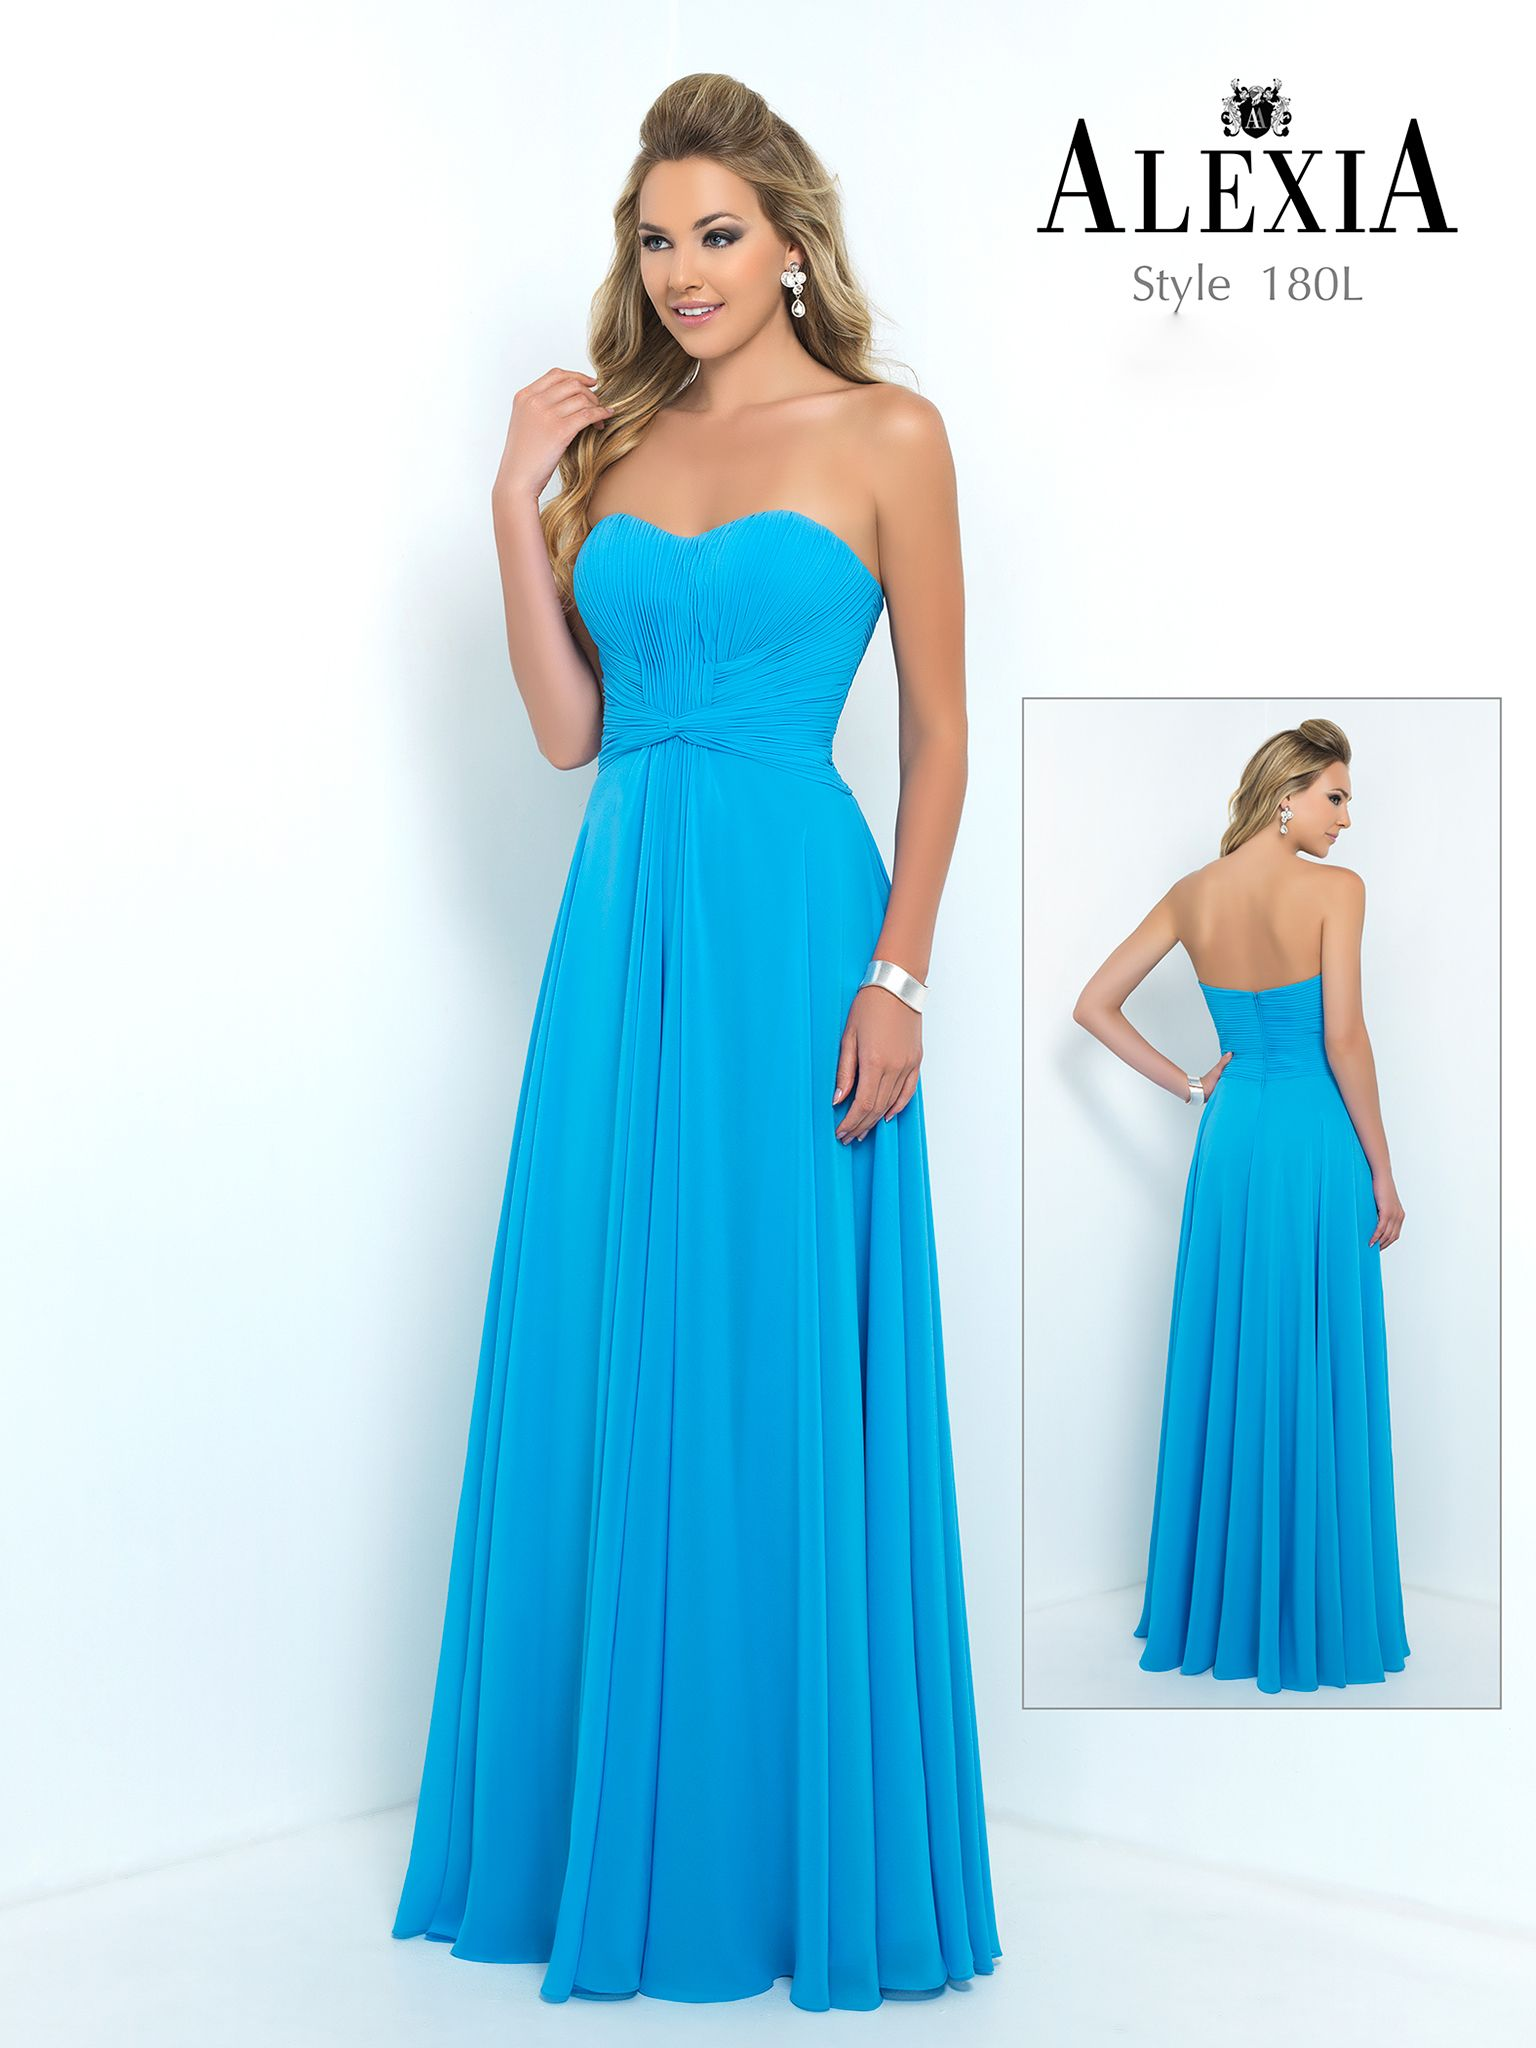 180L from Alexia Designs Bridesmaid | wedding | Pinterest | Dress ...